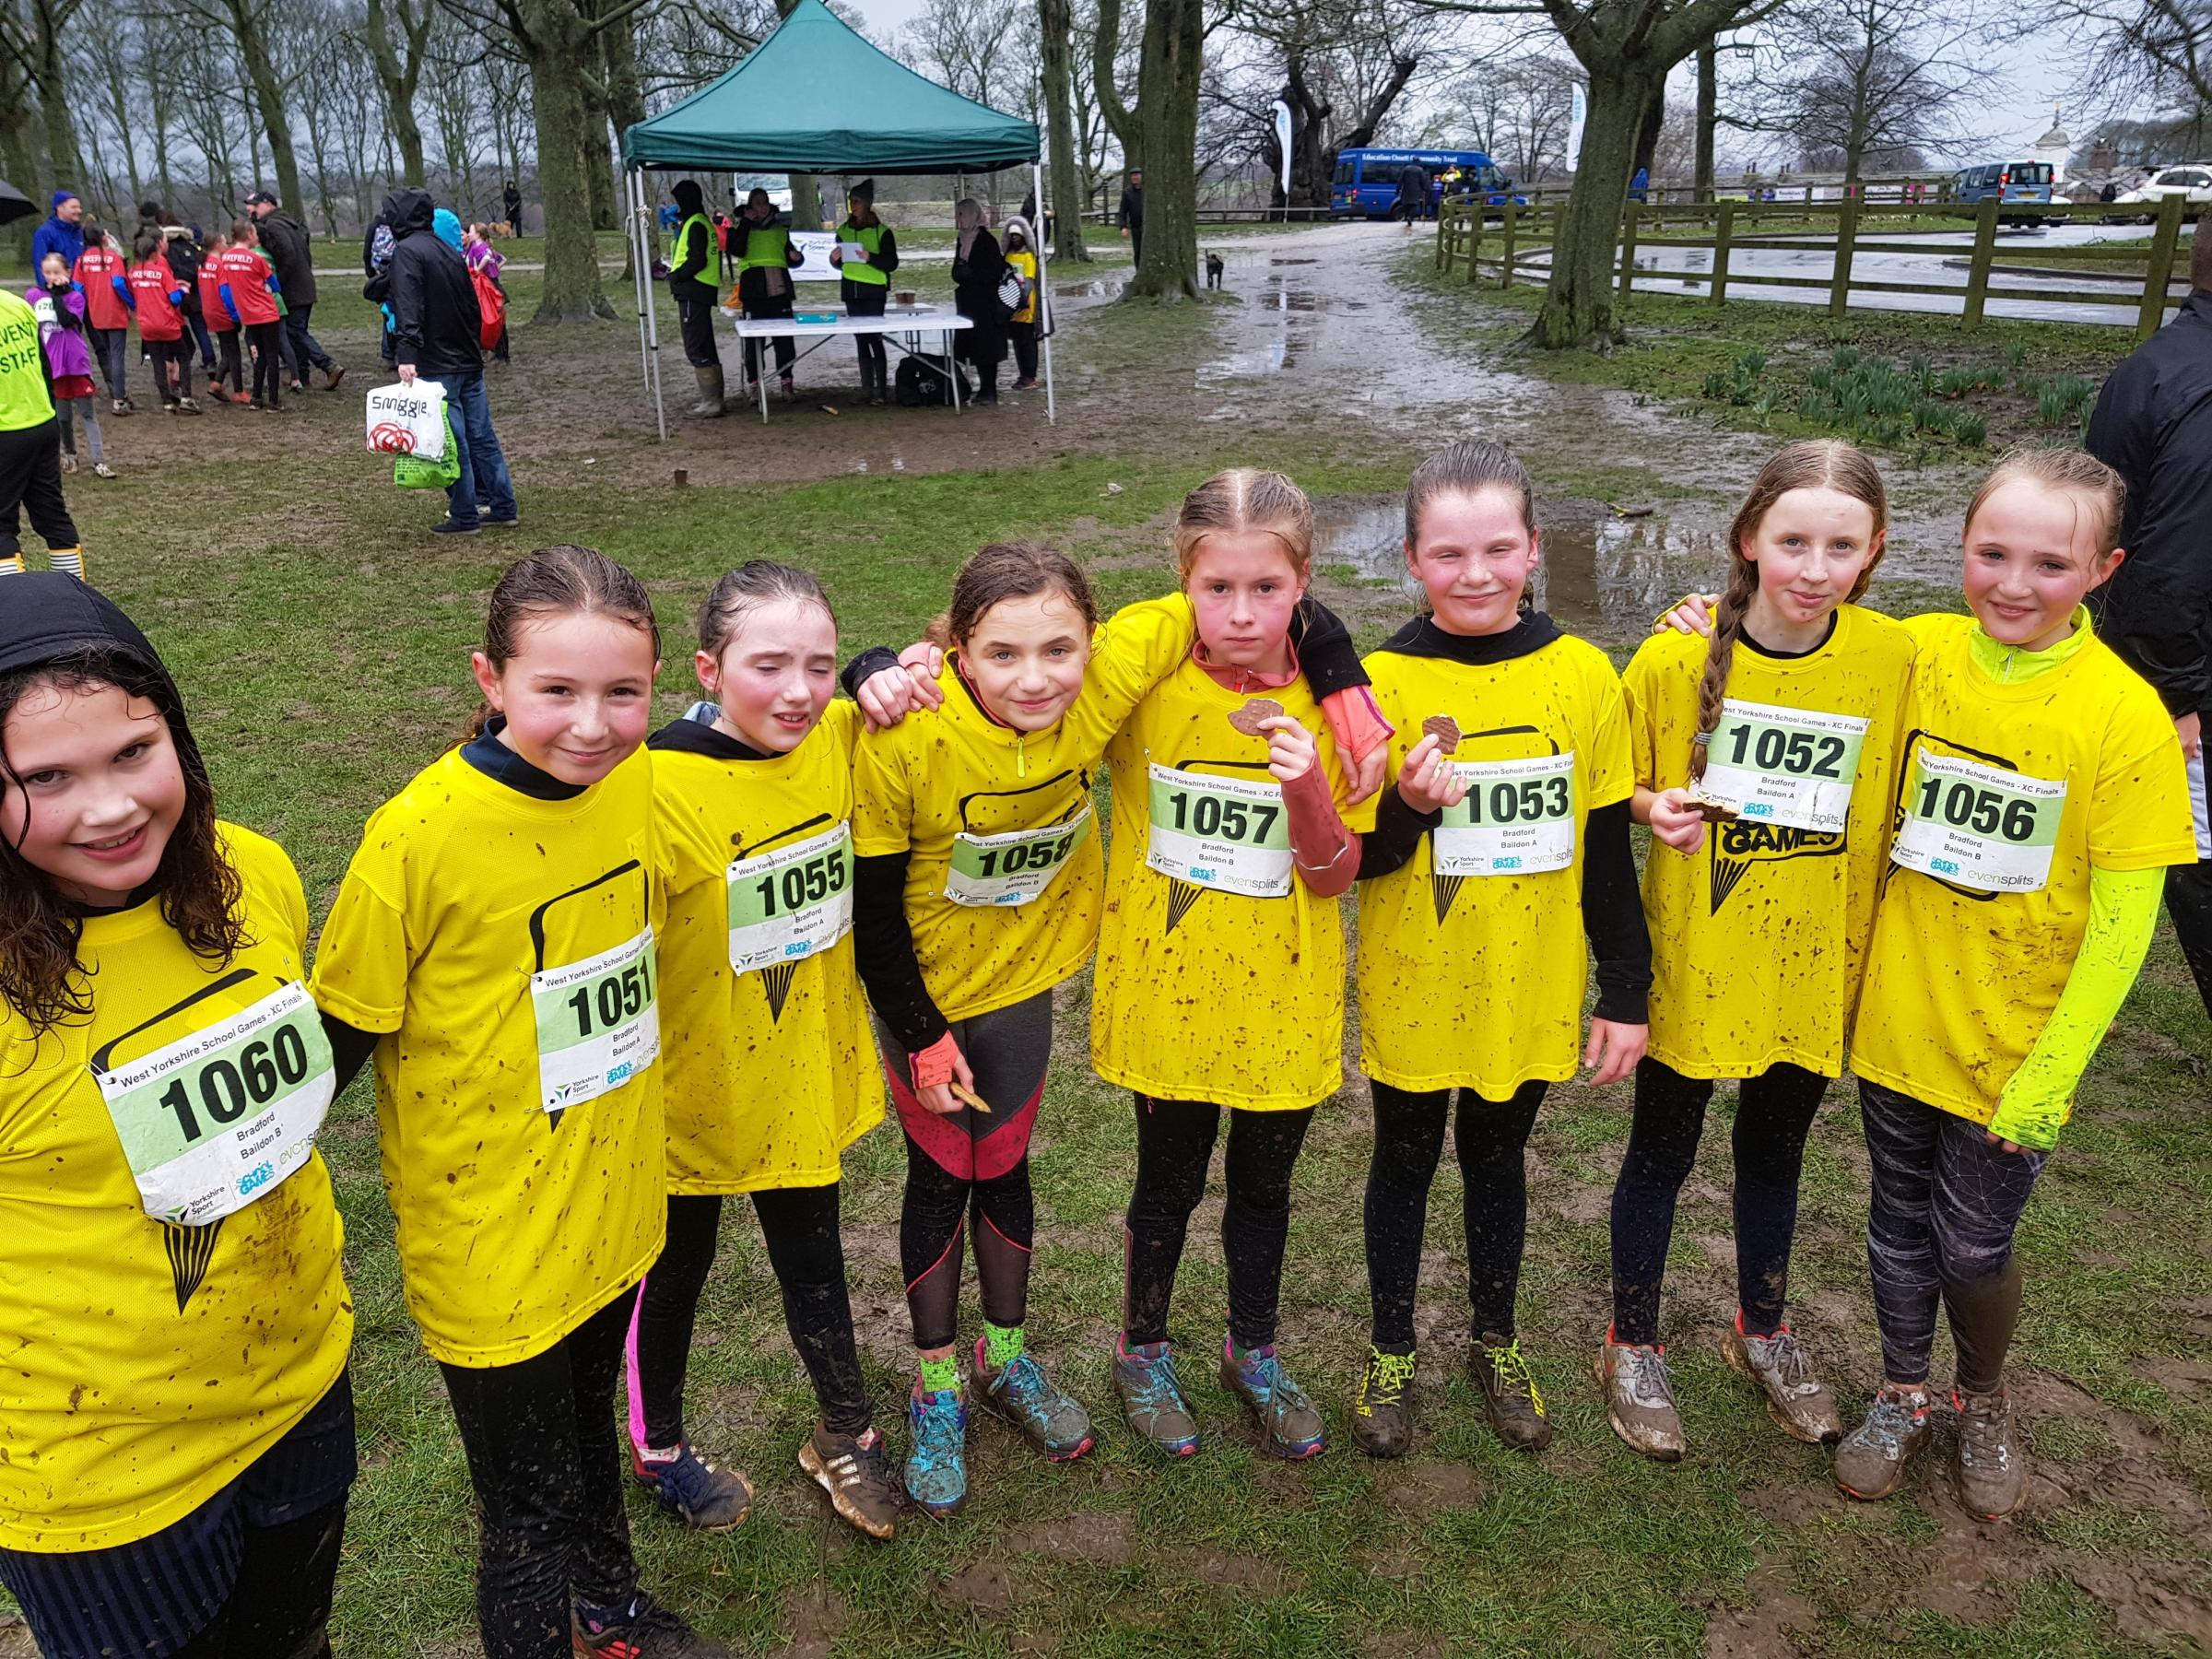 Baildon Church School were among the honours at Temple Newsam, with their Year 6 girls claiming silver